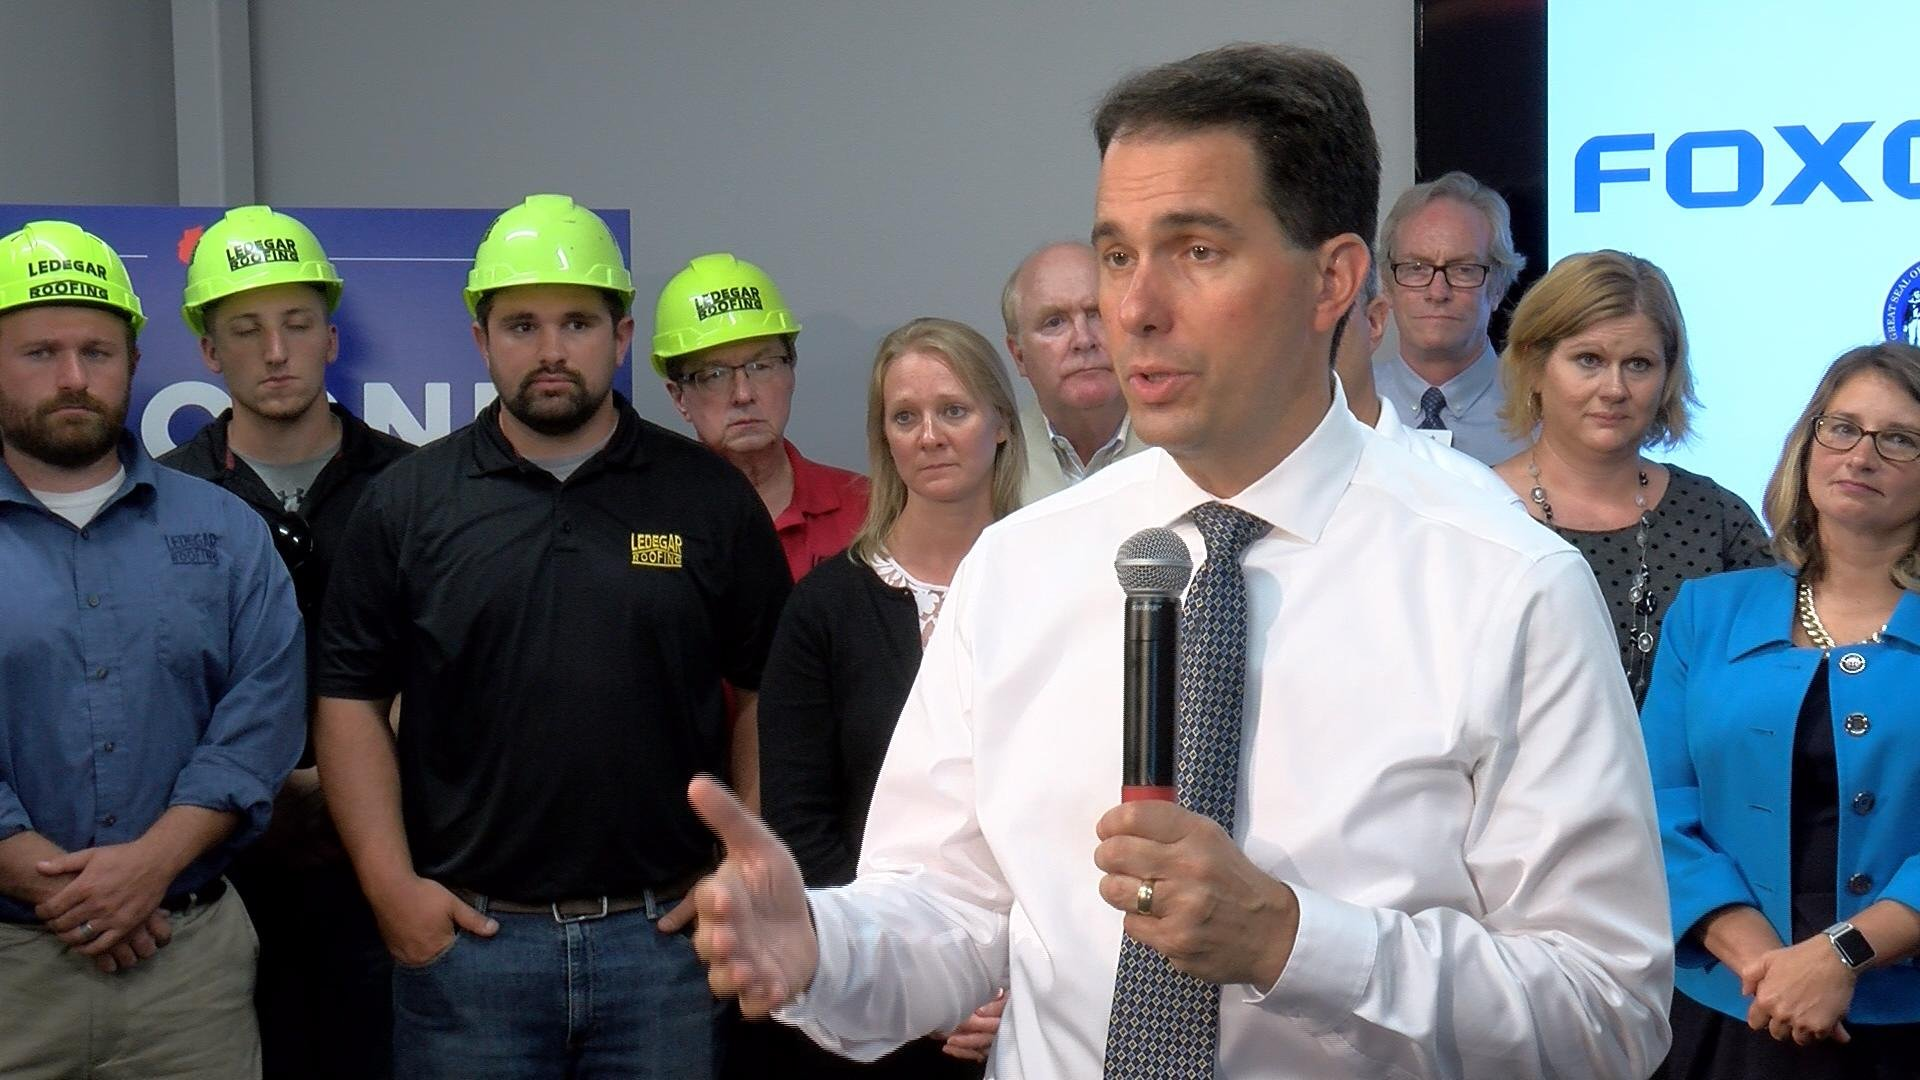 Governor Walker tours Wisconsin talking about Foxconn